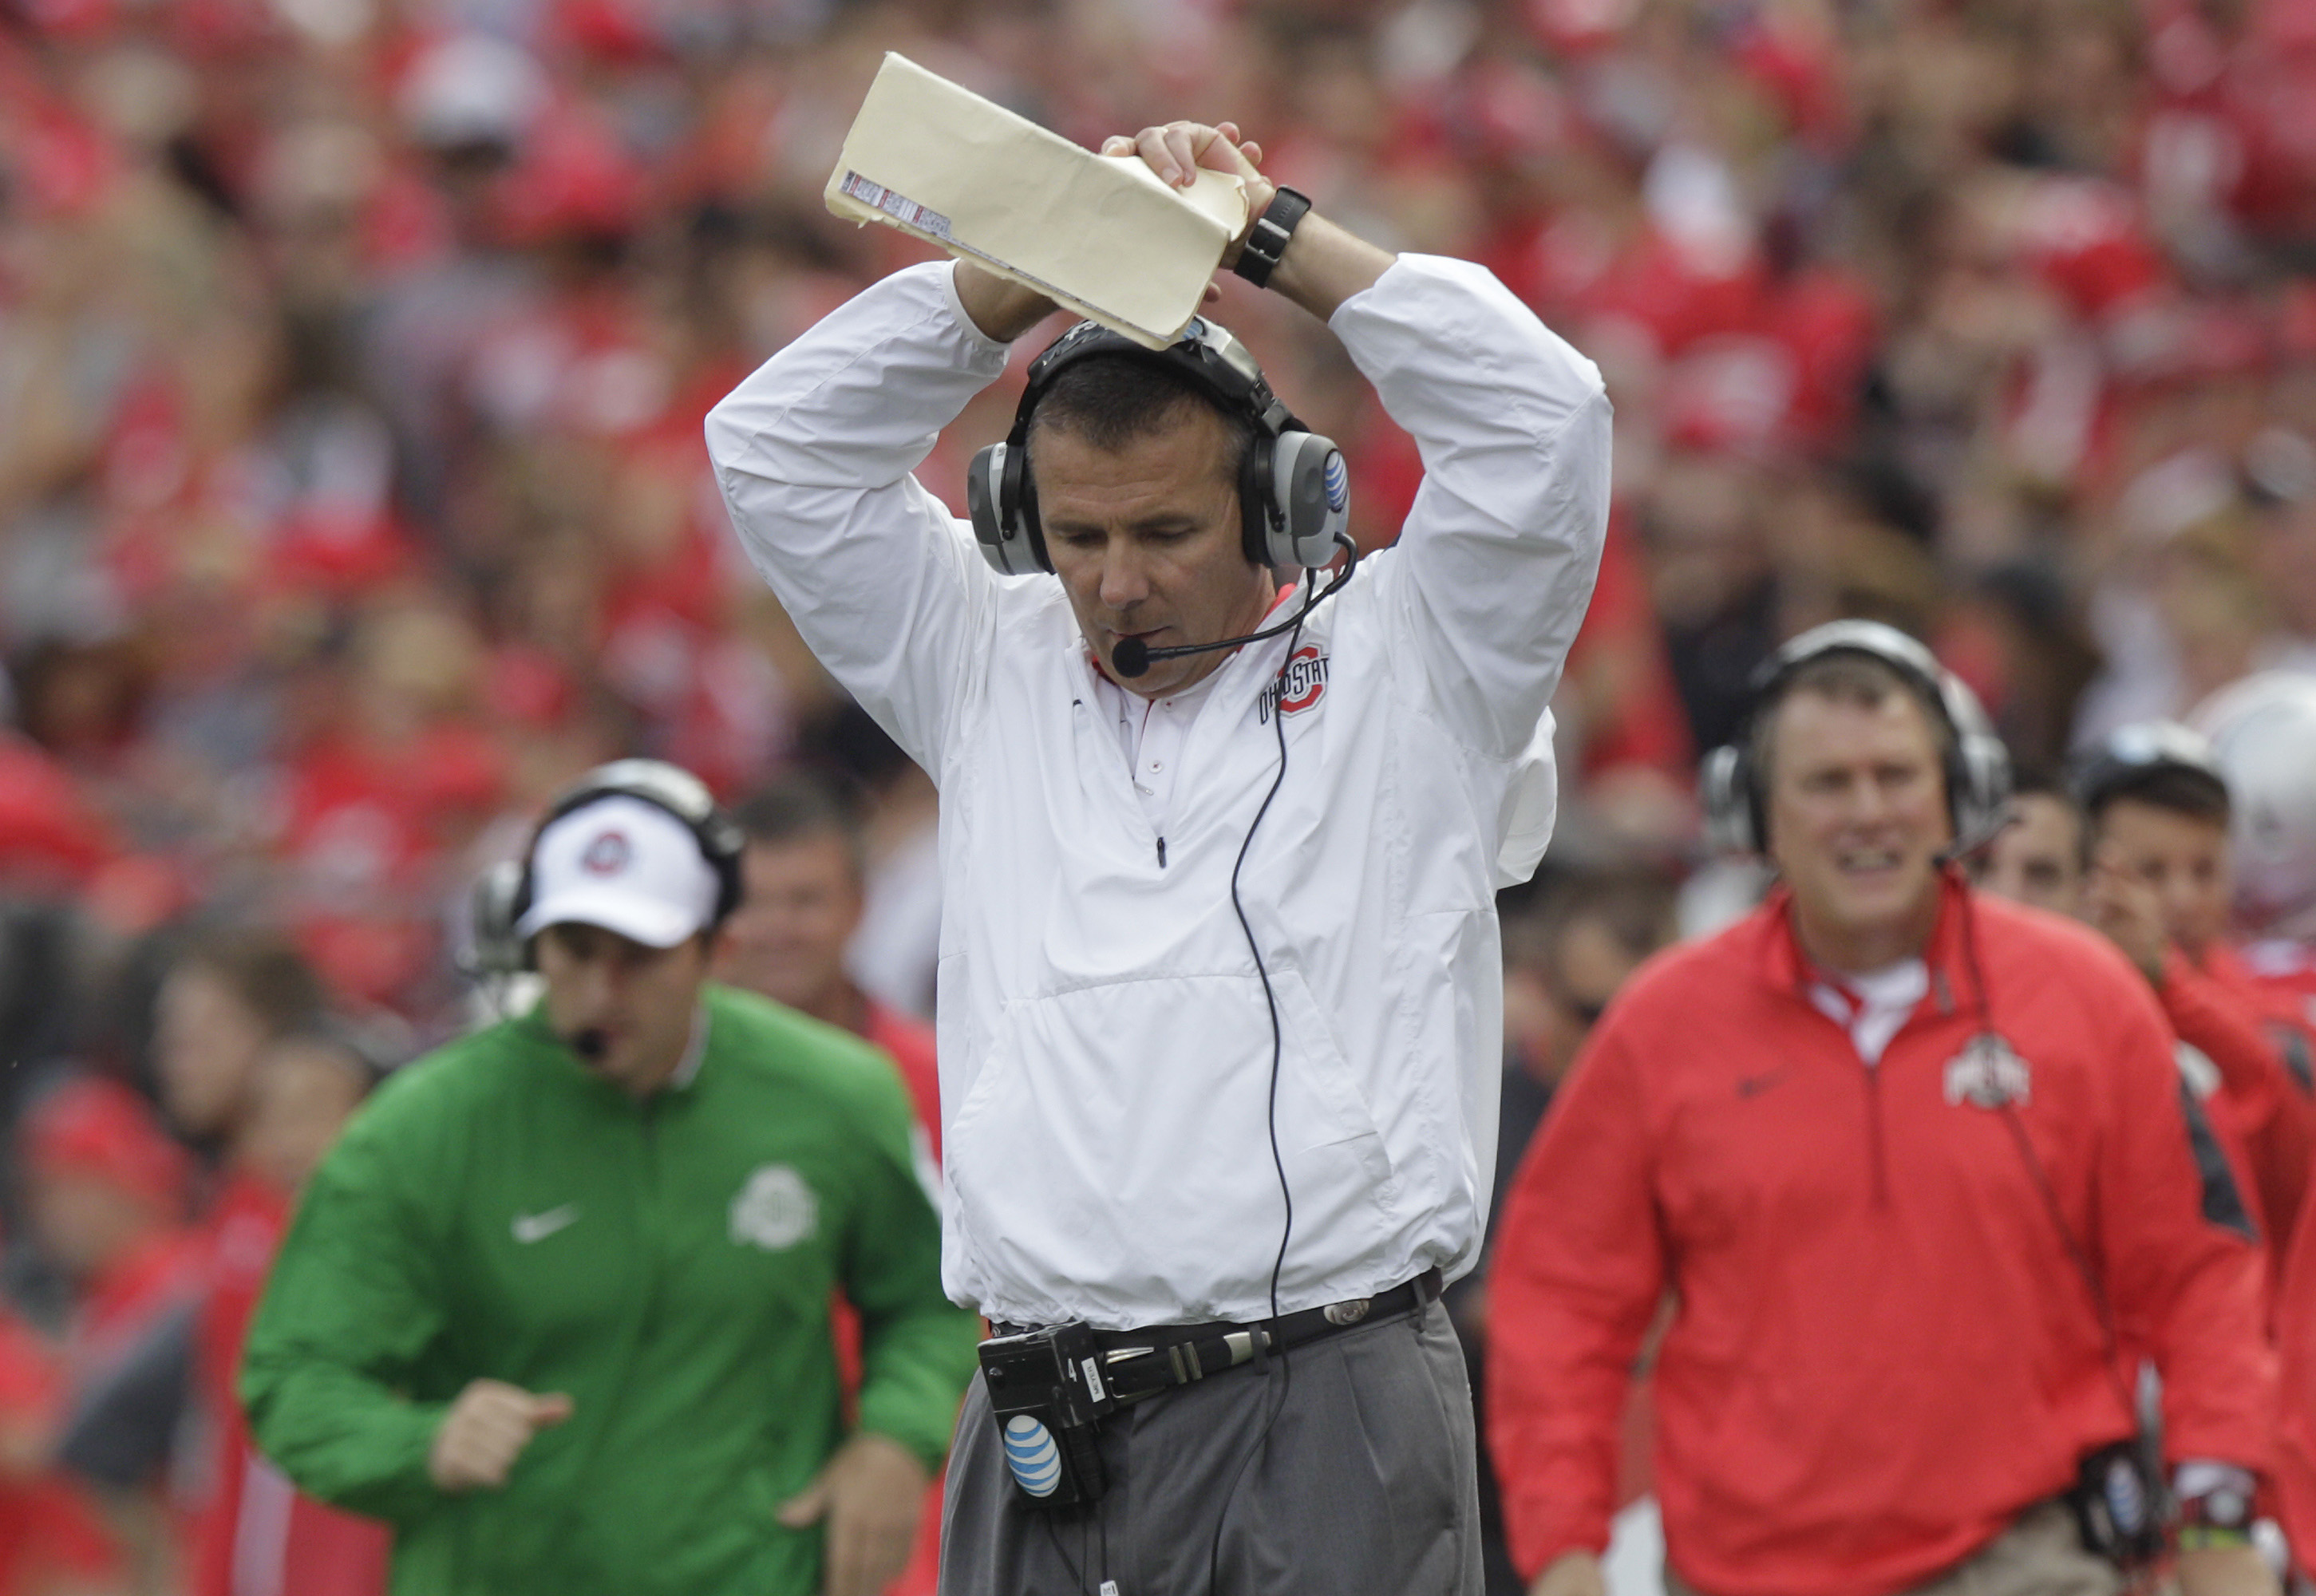 Ohio State head coach Urban Meyer reacts to missing a fourth down conversion against Northern Illinois during the second quarter of an NCAA college football game Saturday, Sept. 19, 2015, in Columbus, Ohio. Ohio State won 20-13. (AP Photo/Jay LaPrete)